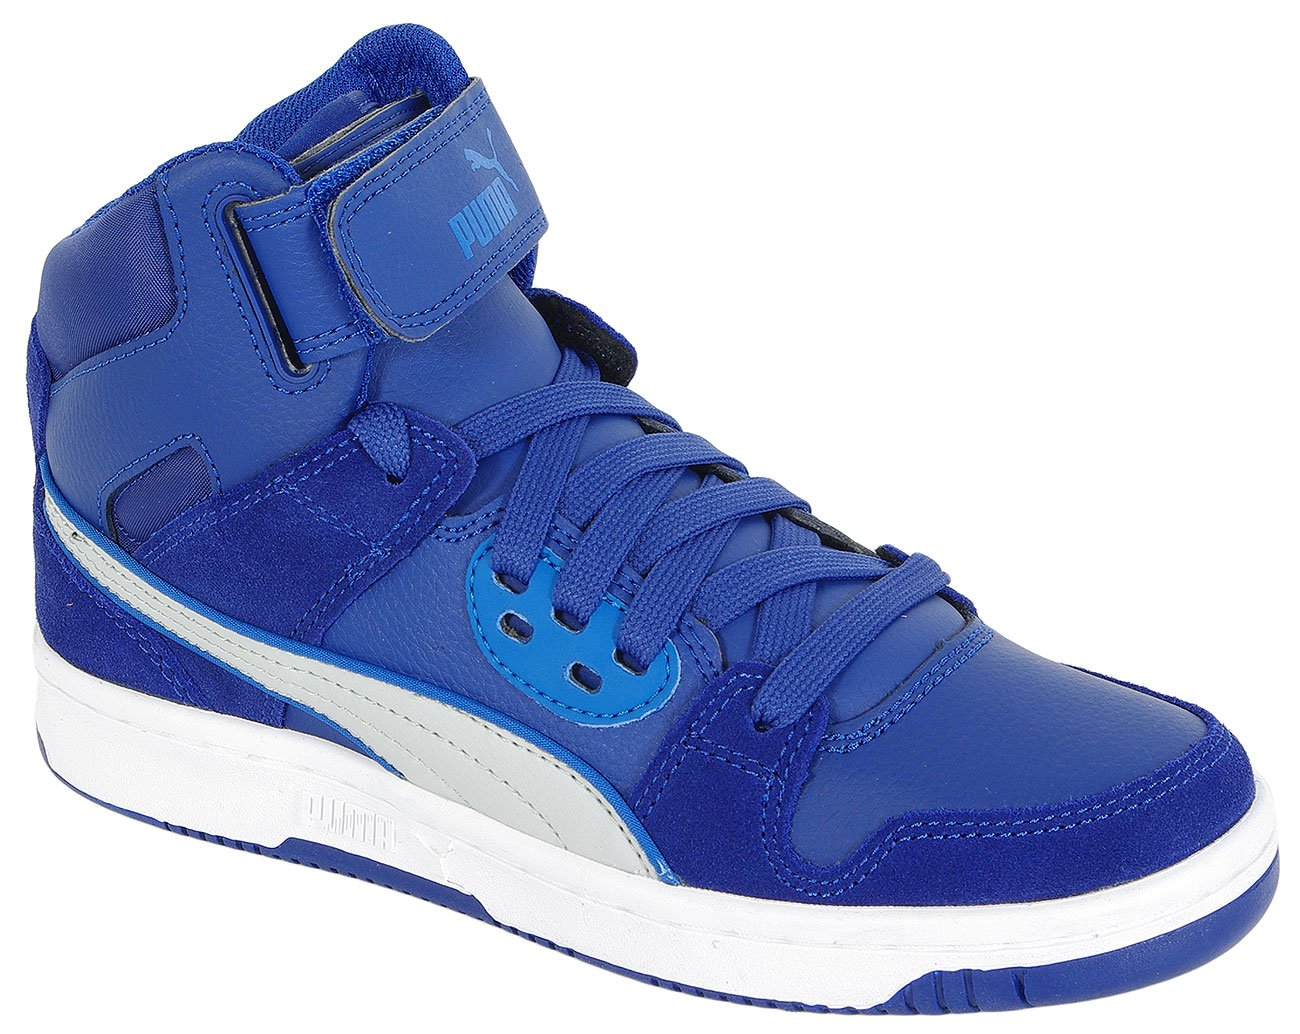 PUMA REBOUND STREET SD JR MAZARINE BLUE GRAY 358585 SNEAKERS